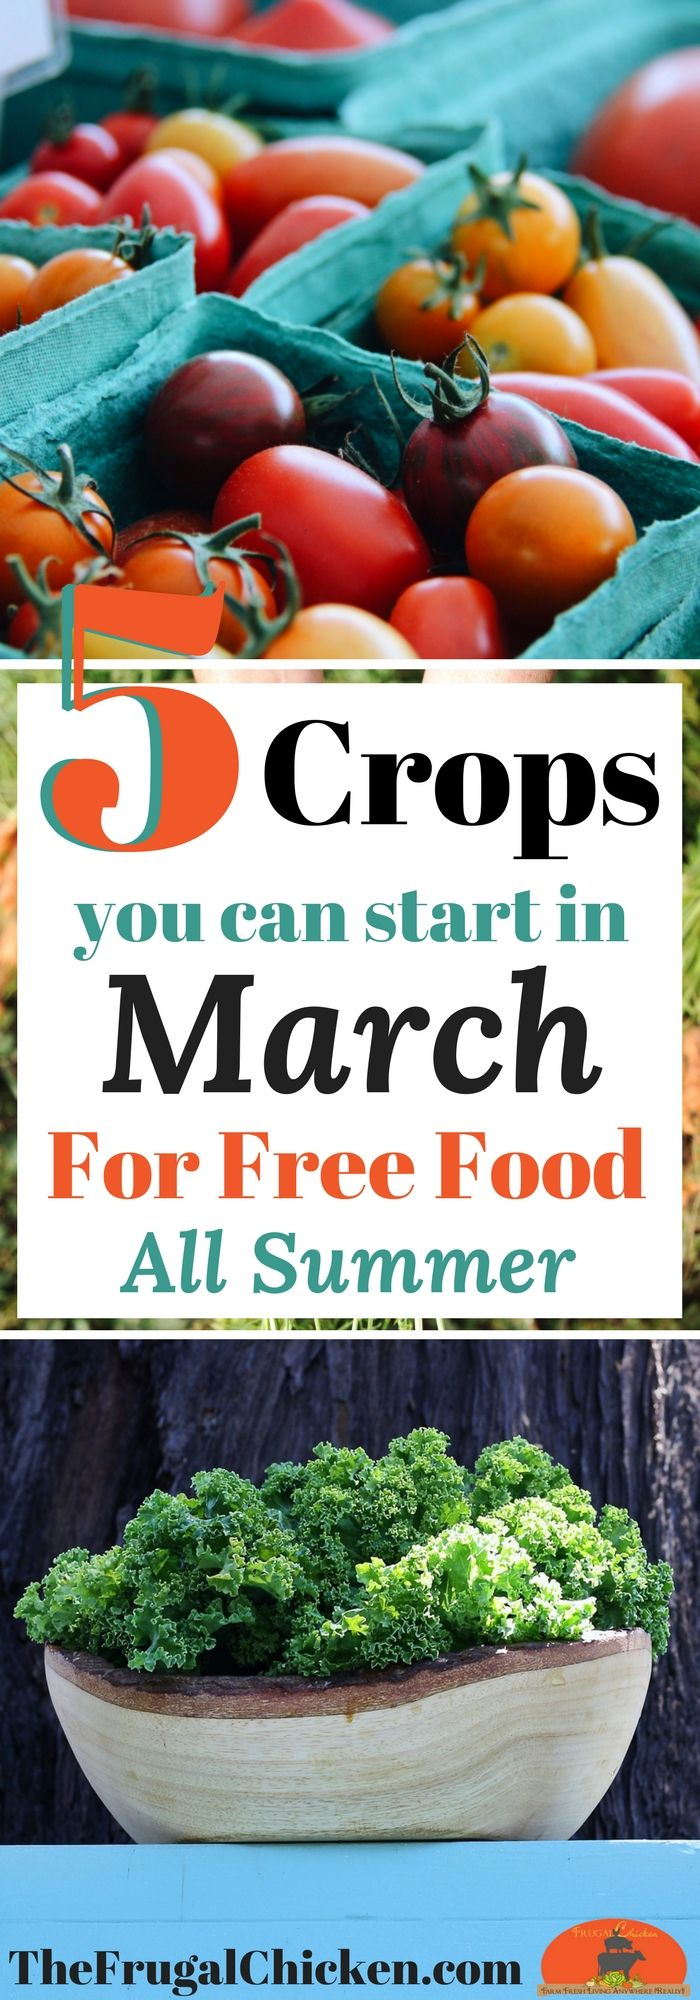 Gardening to save money or for healthier, organic food? Here's 5 delish veggies you can start now for free, healthy organic food all summer!